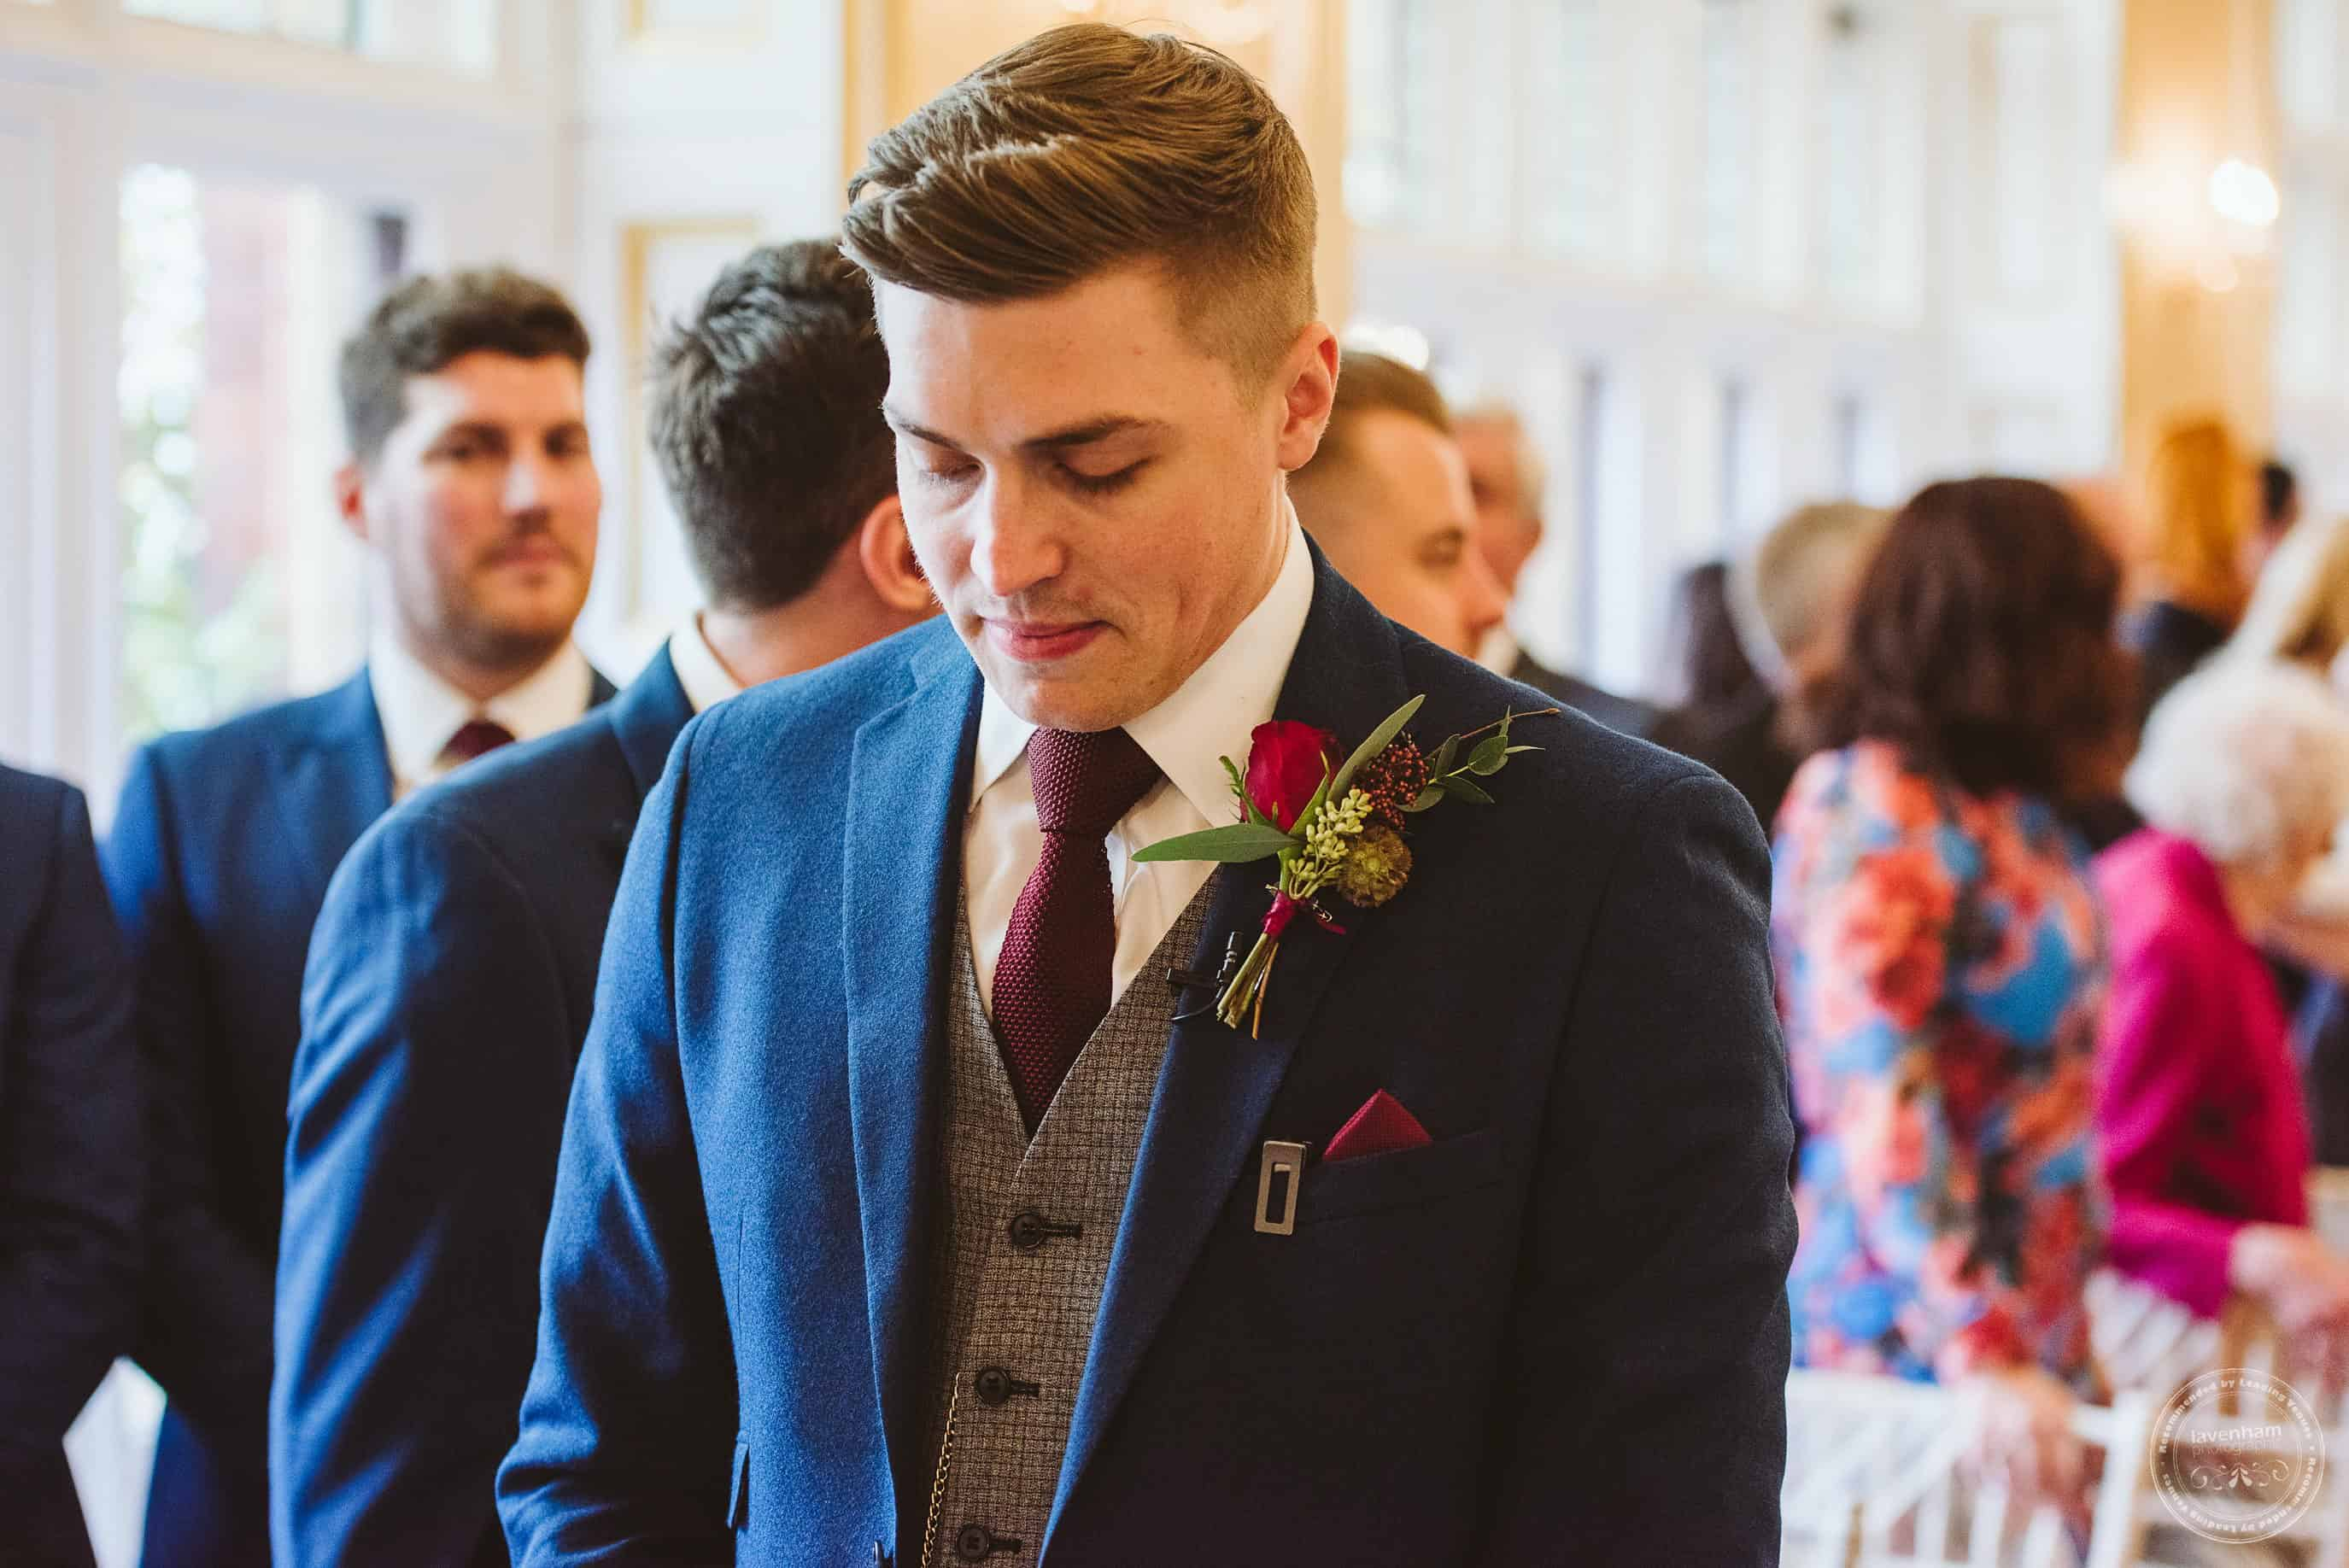 301119 Holmewood Hall Wedding Photographer 090